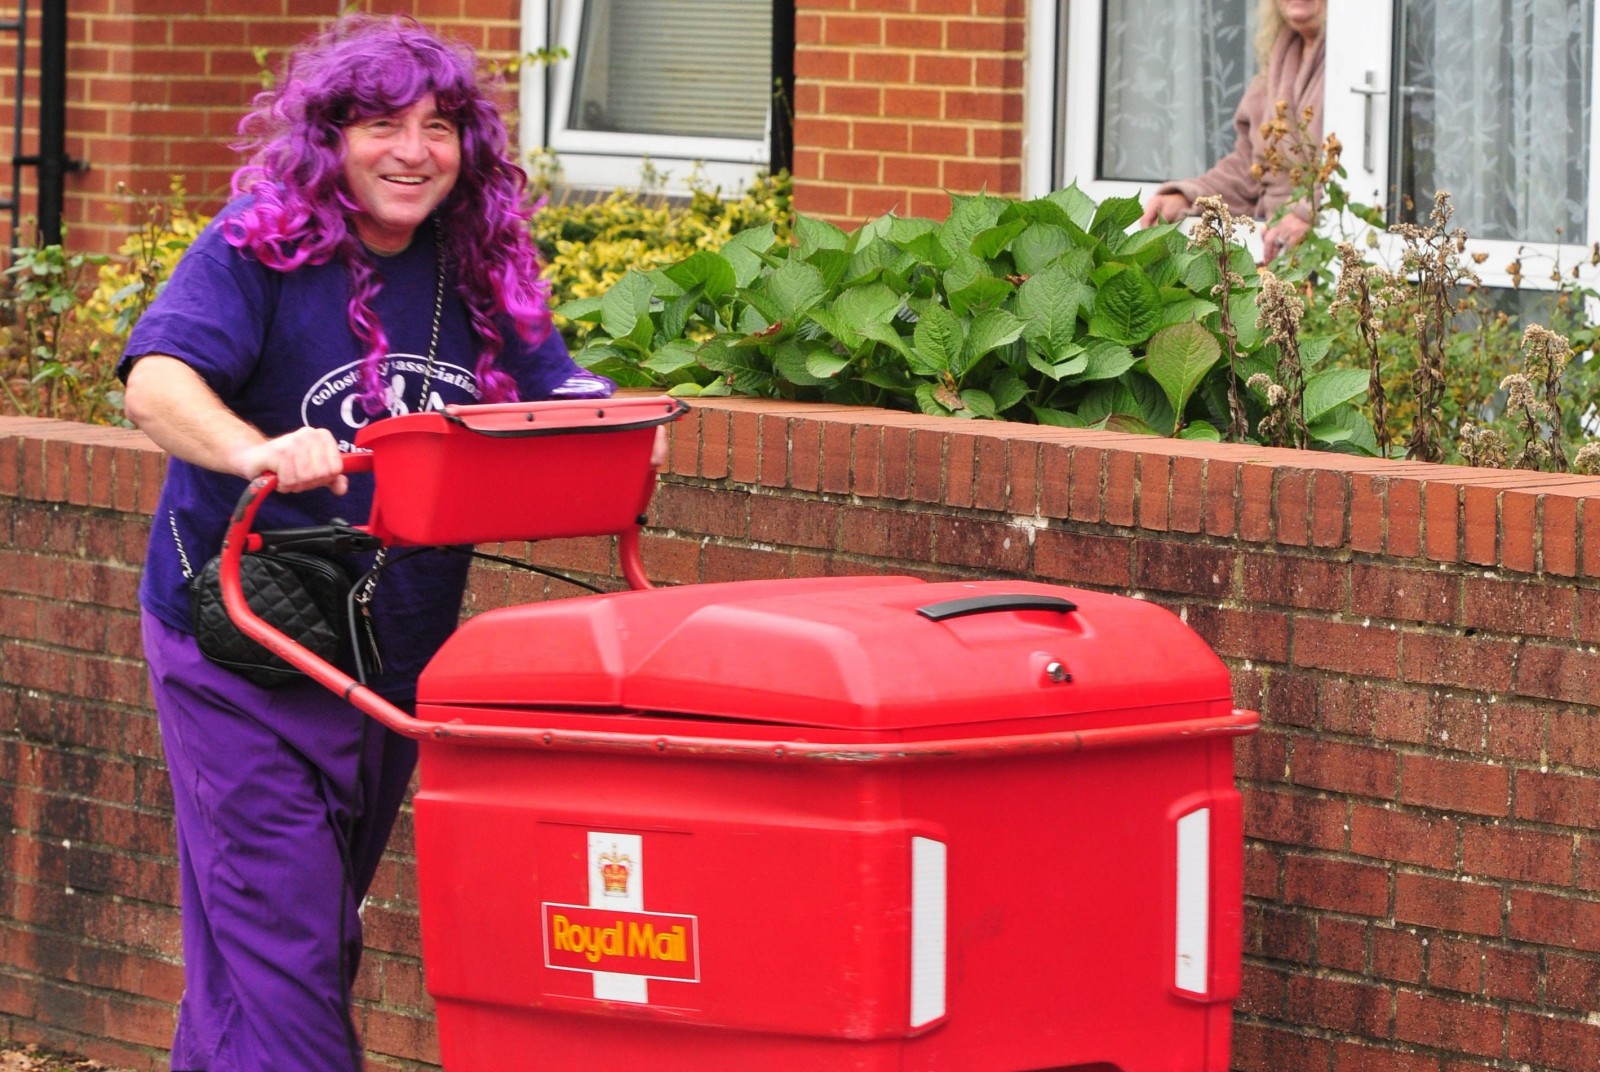 'I'm not afraid to talk about it' Postie delivers very important message in style